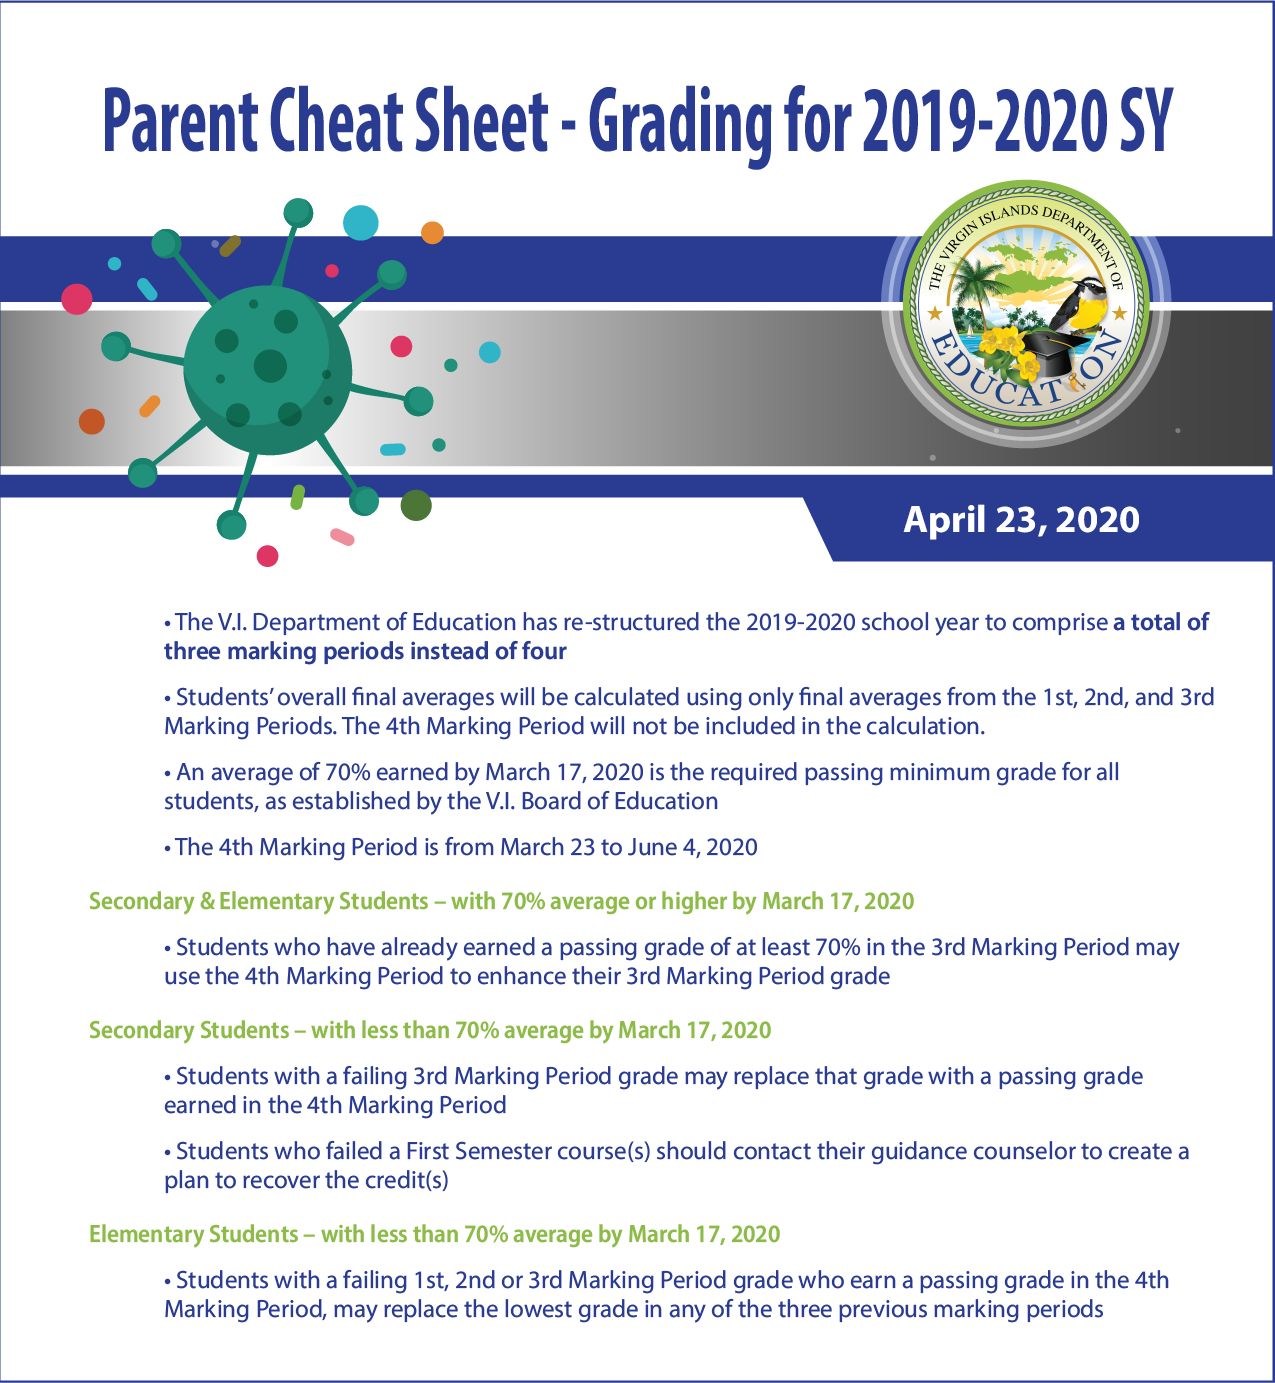 Parent Cheat Sheet - Grading for 2019-2020 SY-01.png